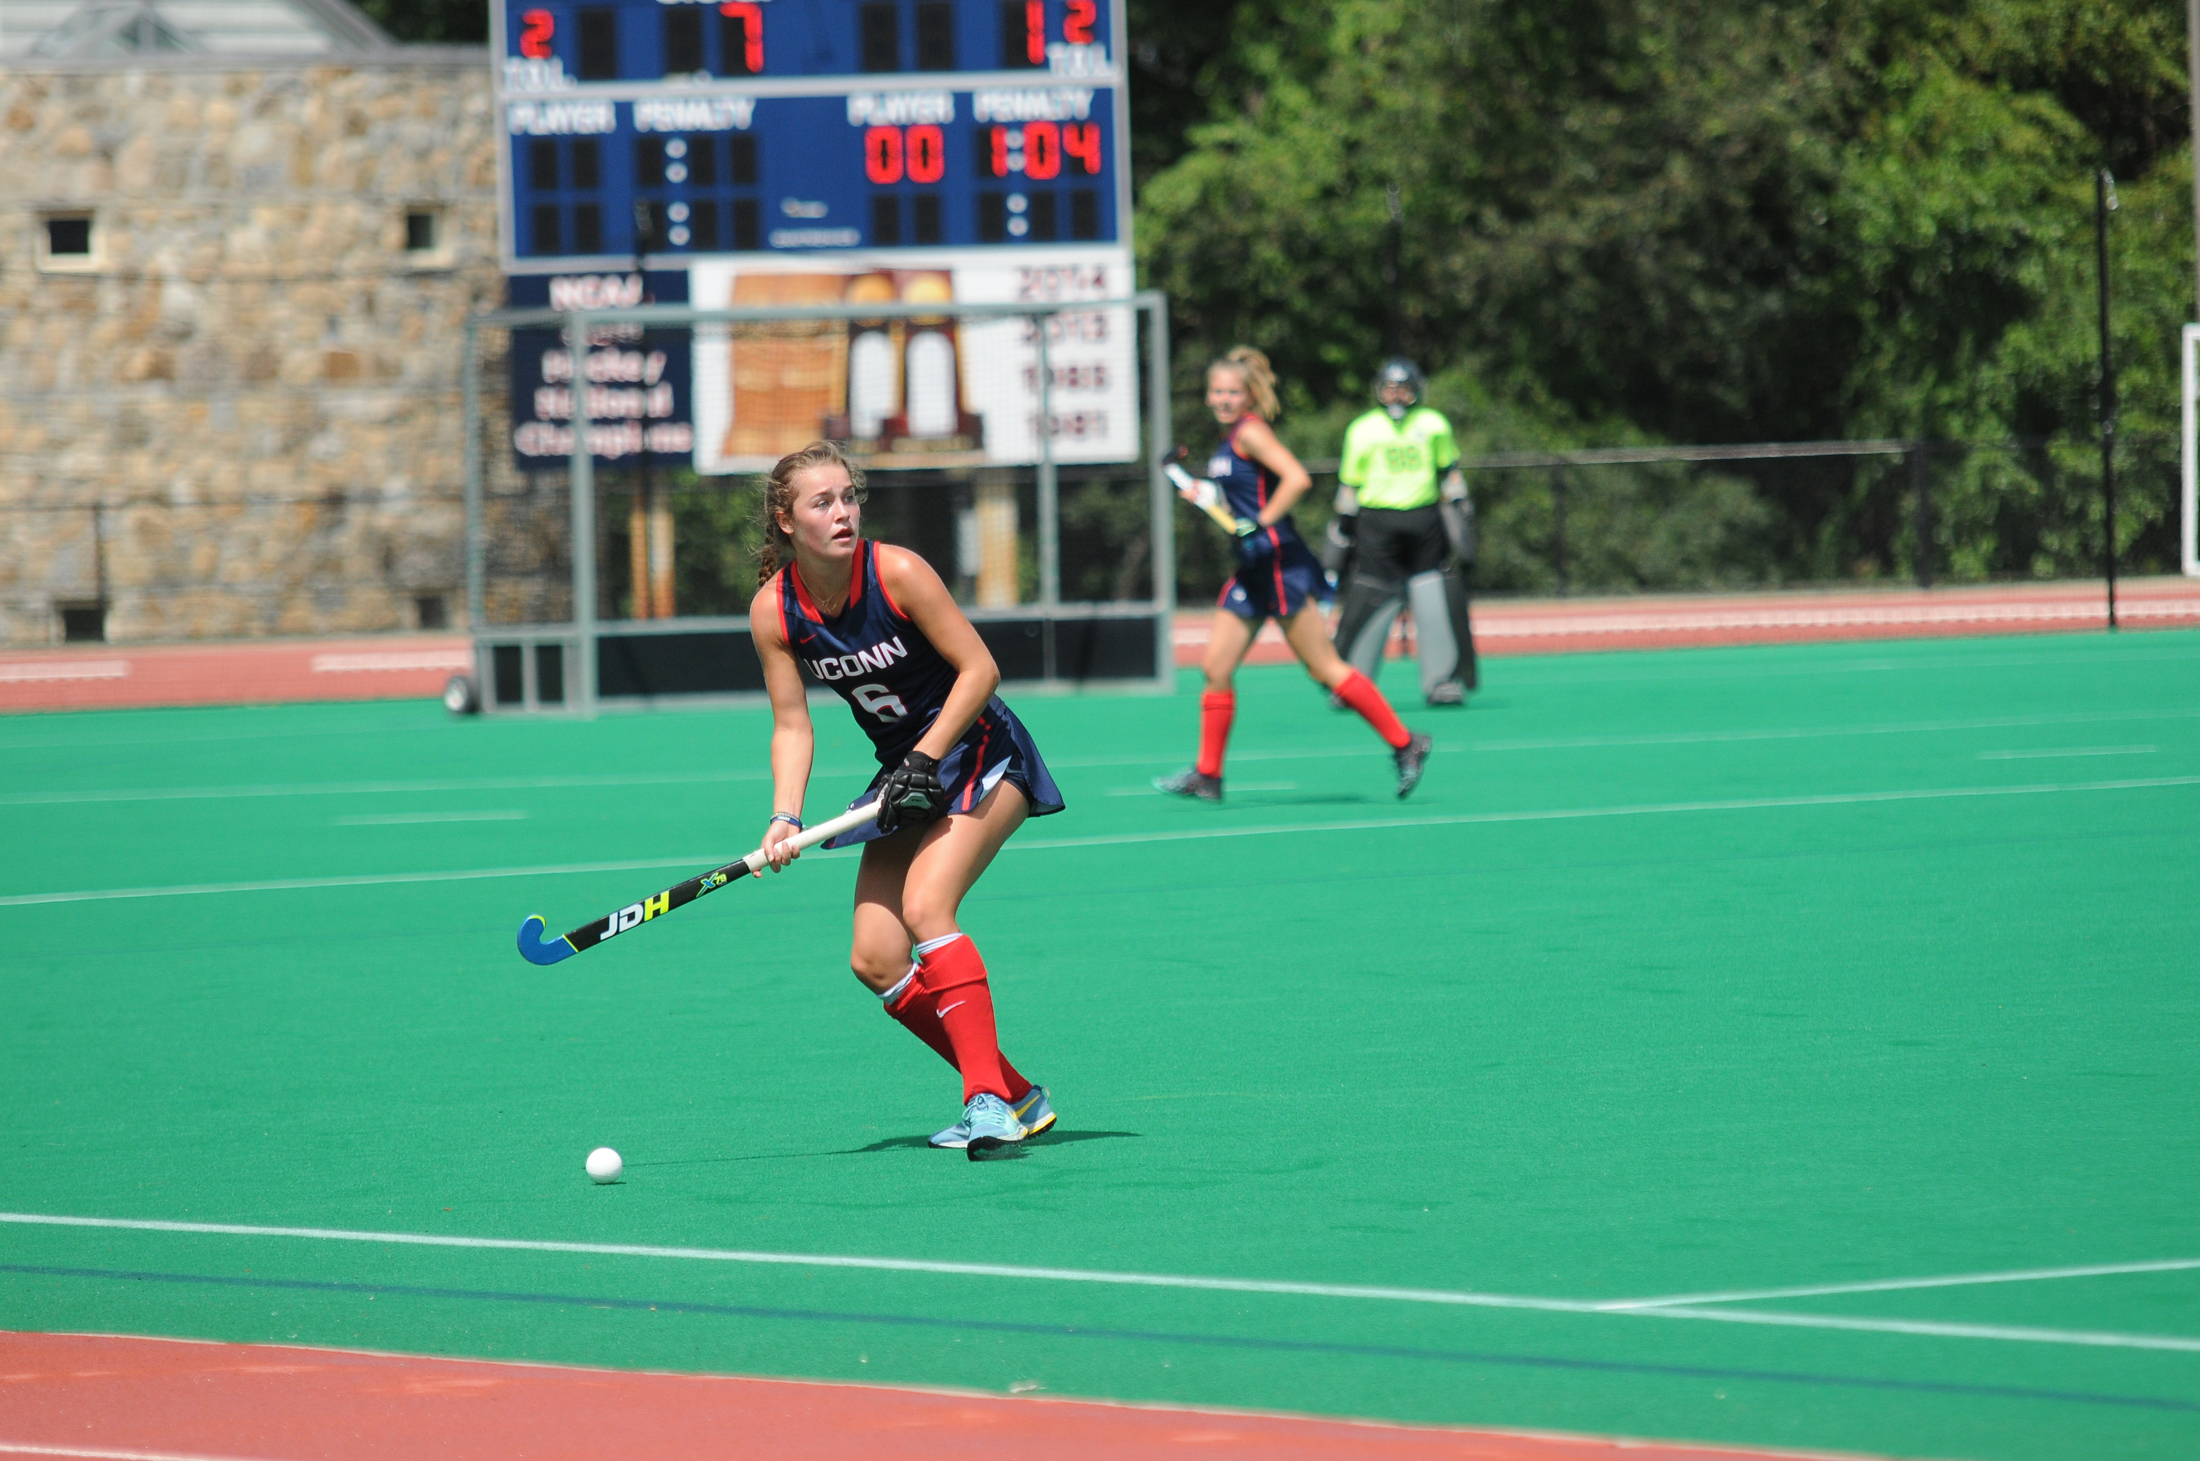 UConn midfielder Barbara van den Hoogen looks for a passing lane during the Huskies 7-0 victory over Northwestern on Sunday, Aug. 27, 2017. (Olivia Stenger/The Daily Campus)